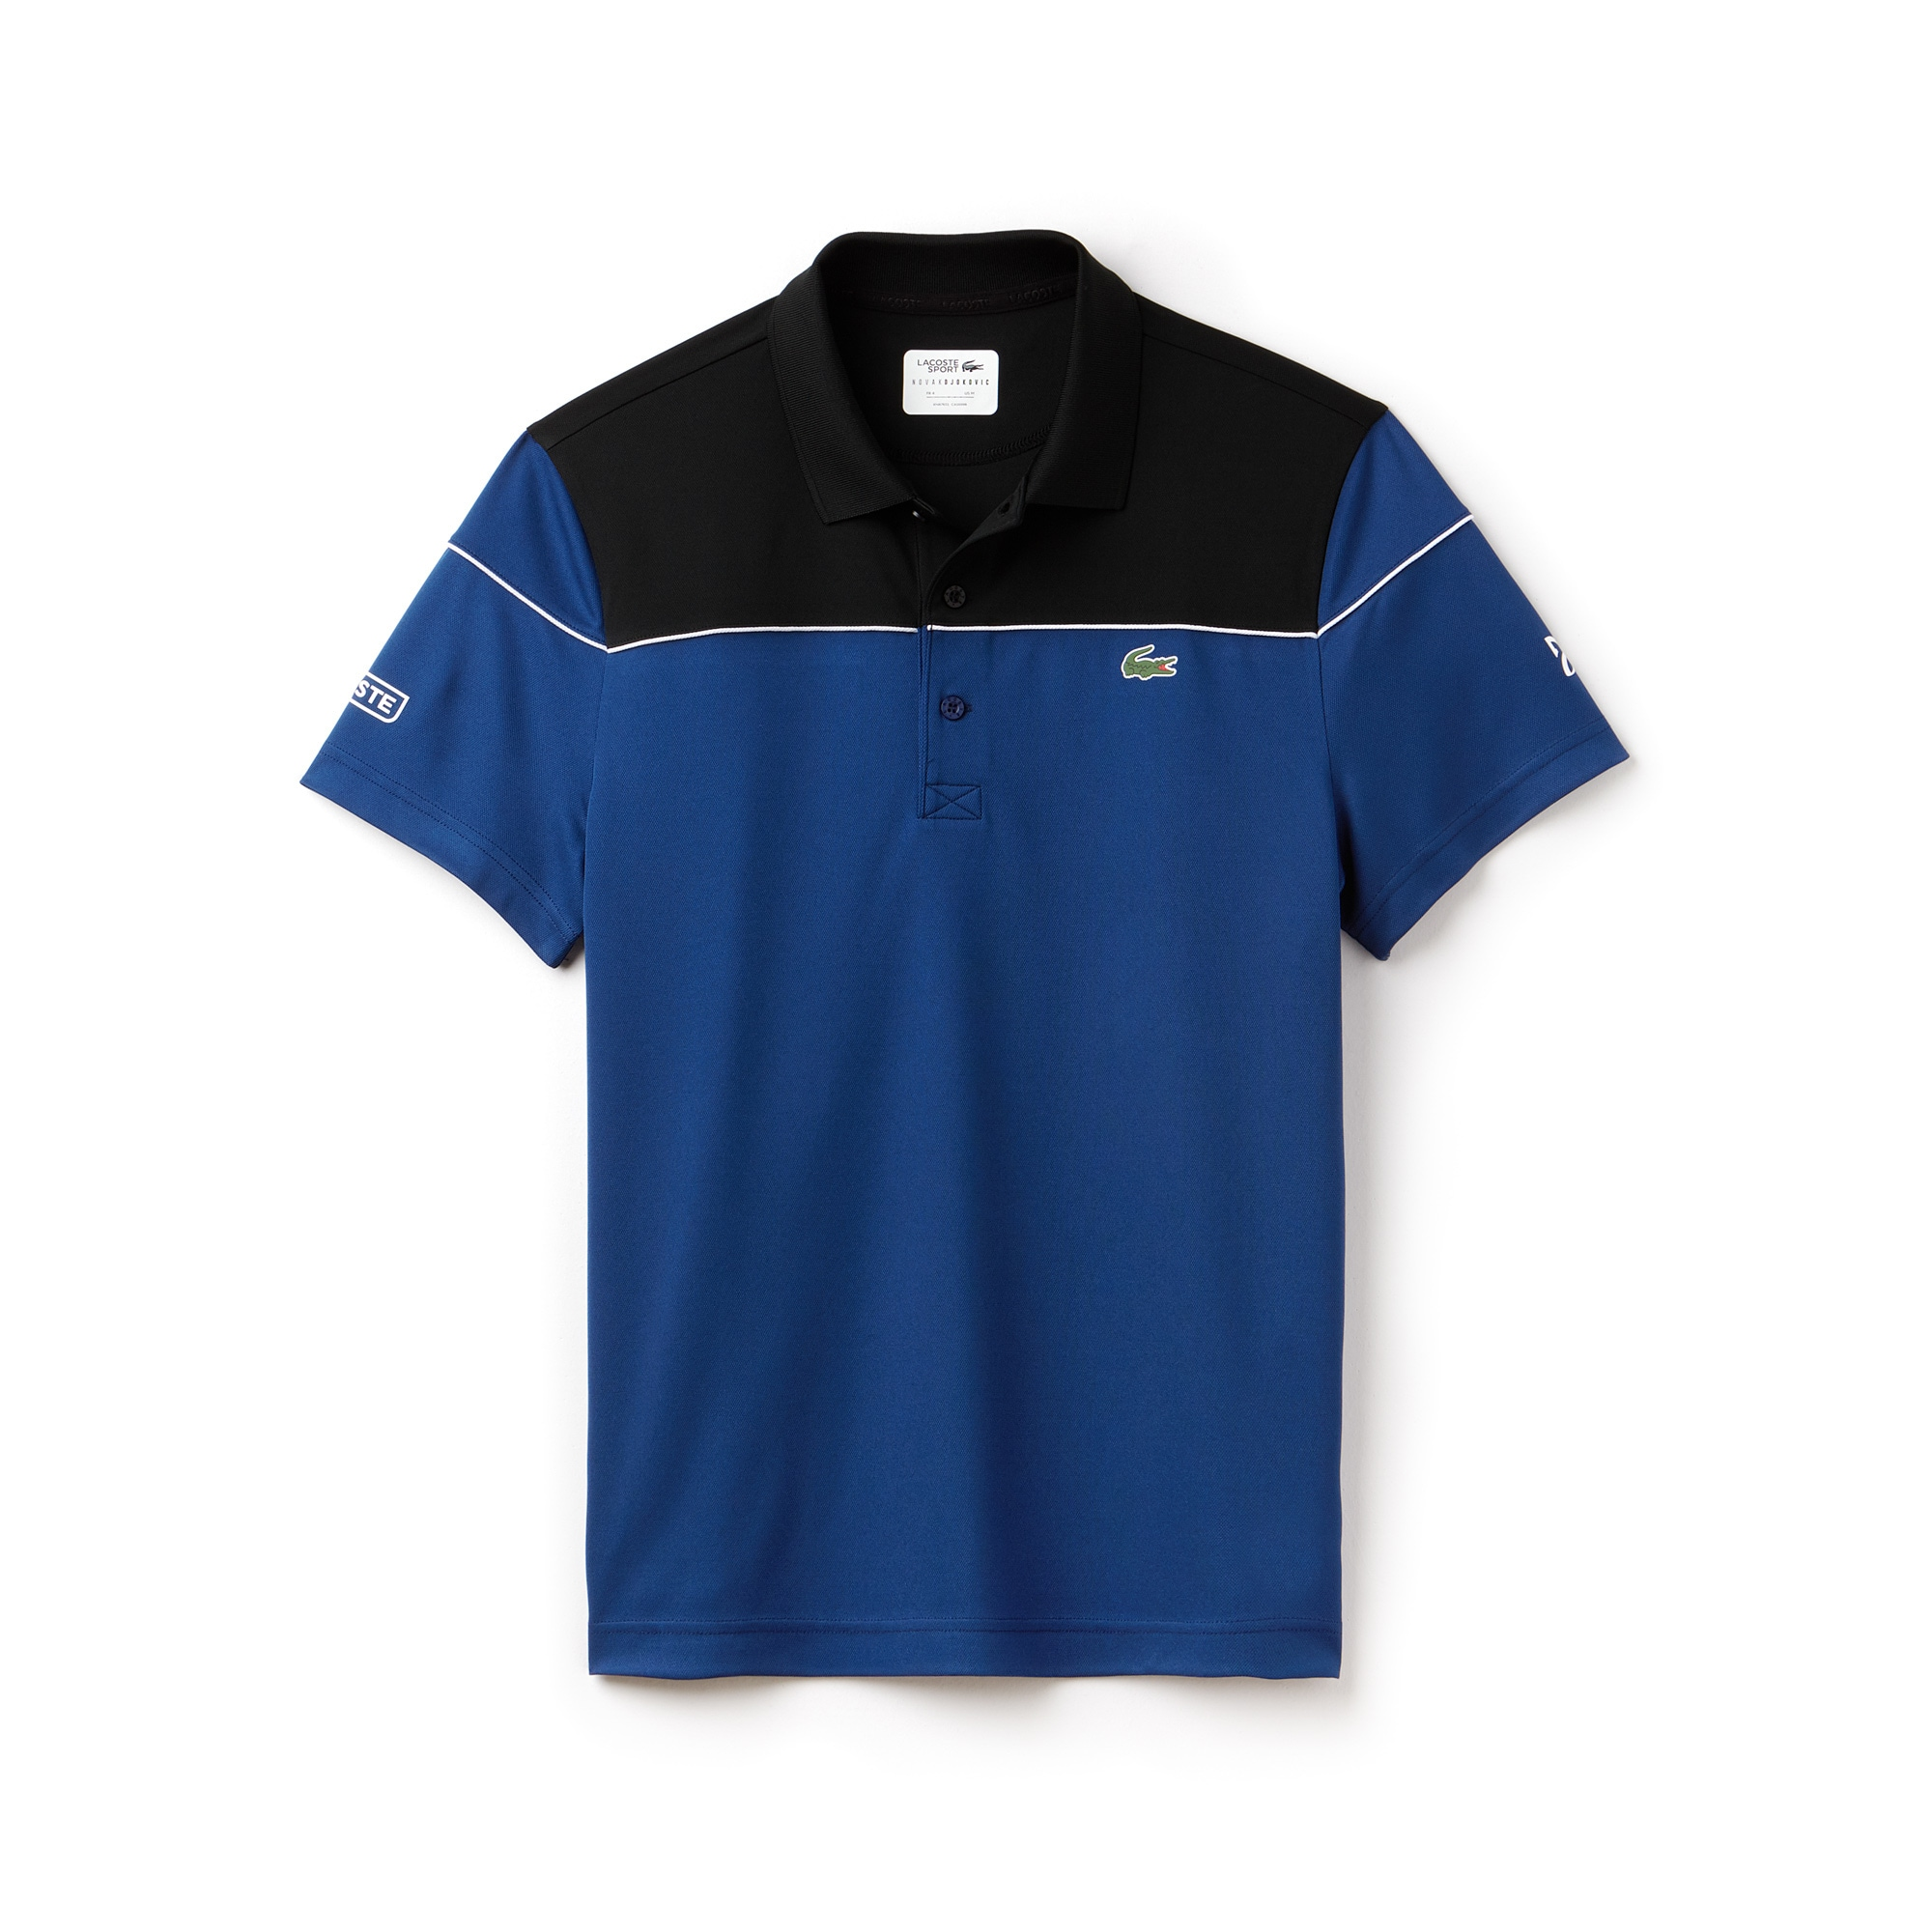 Herren LACOSTE SPORT NOVAK DJOKOVIC COLLECTION Poloshirt